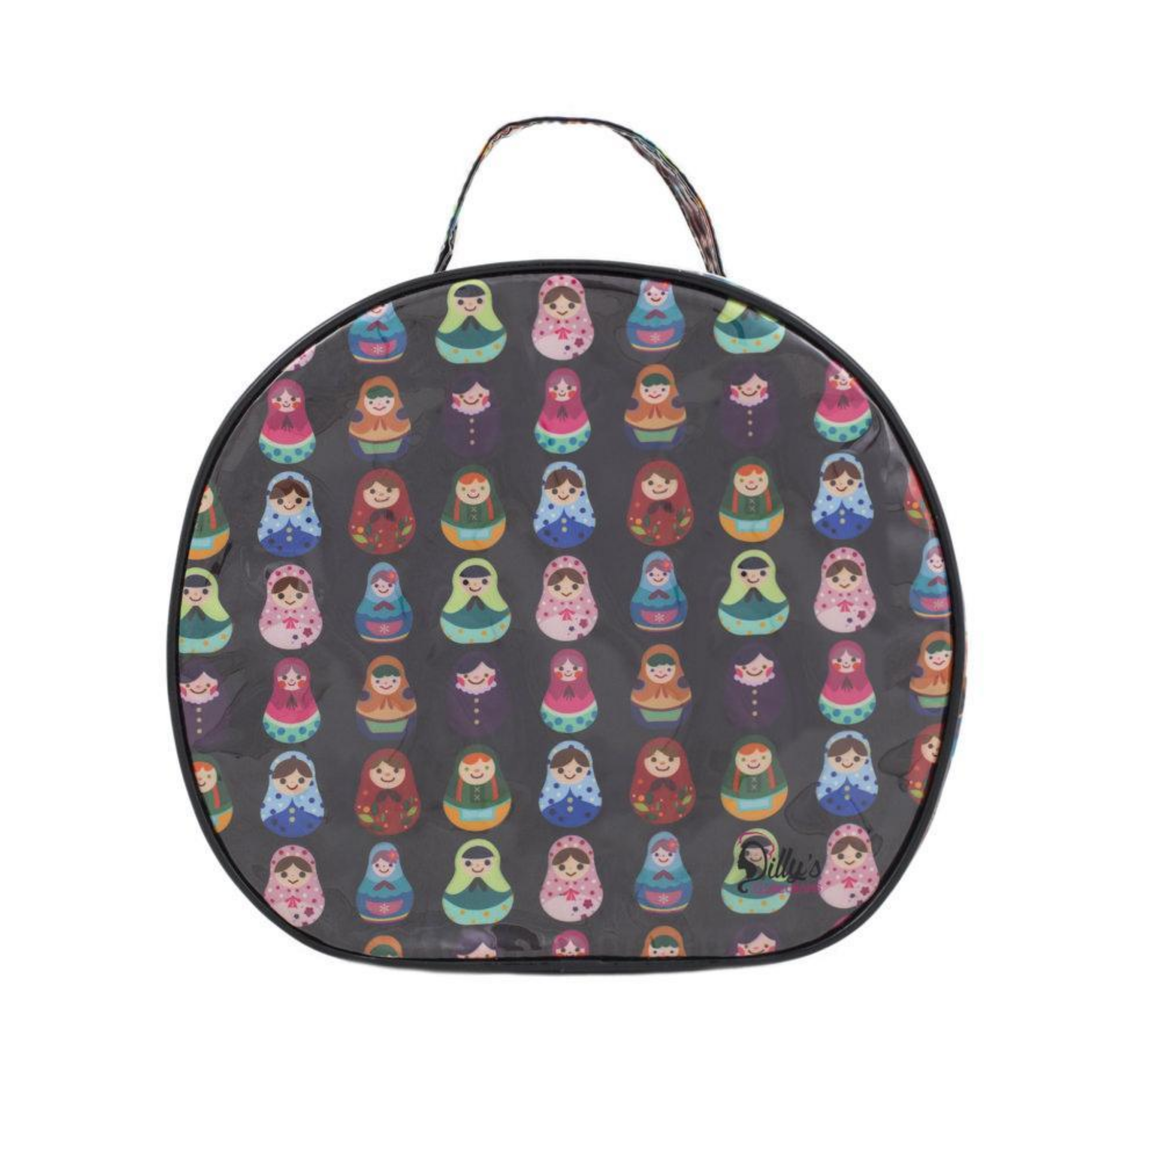 BABUSHKA ROUND COSMETICS BAG - LARGE